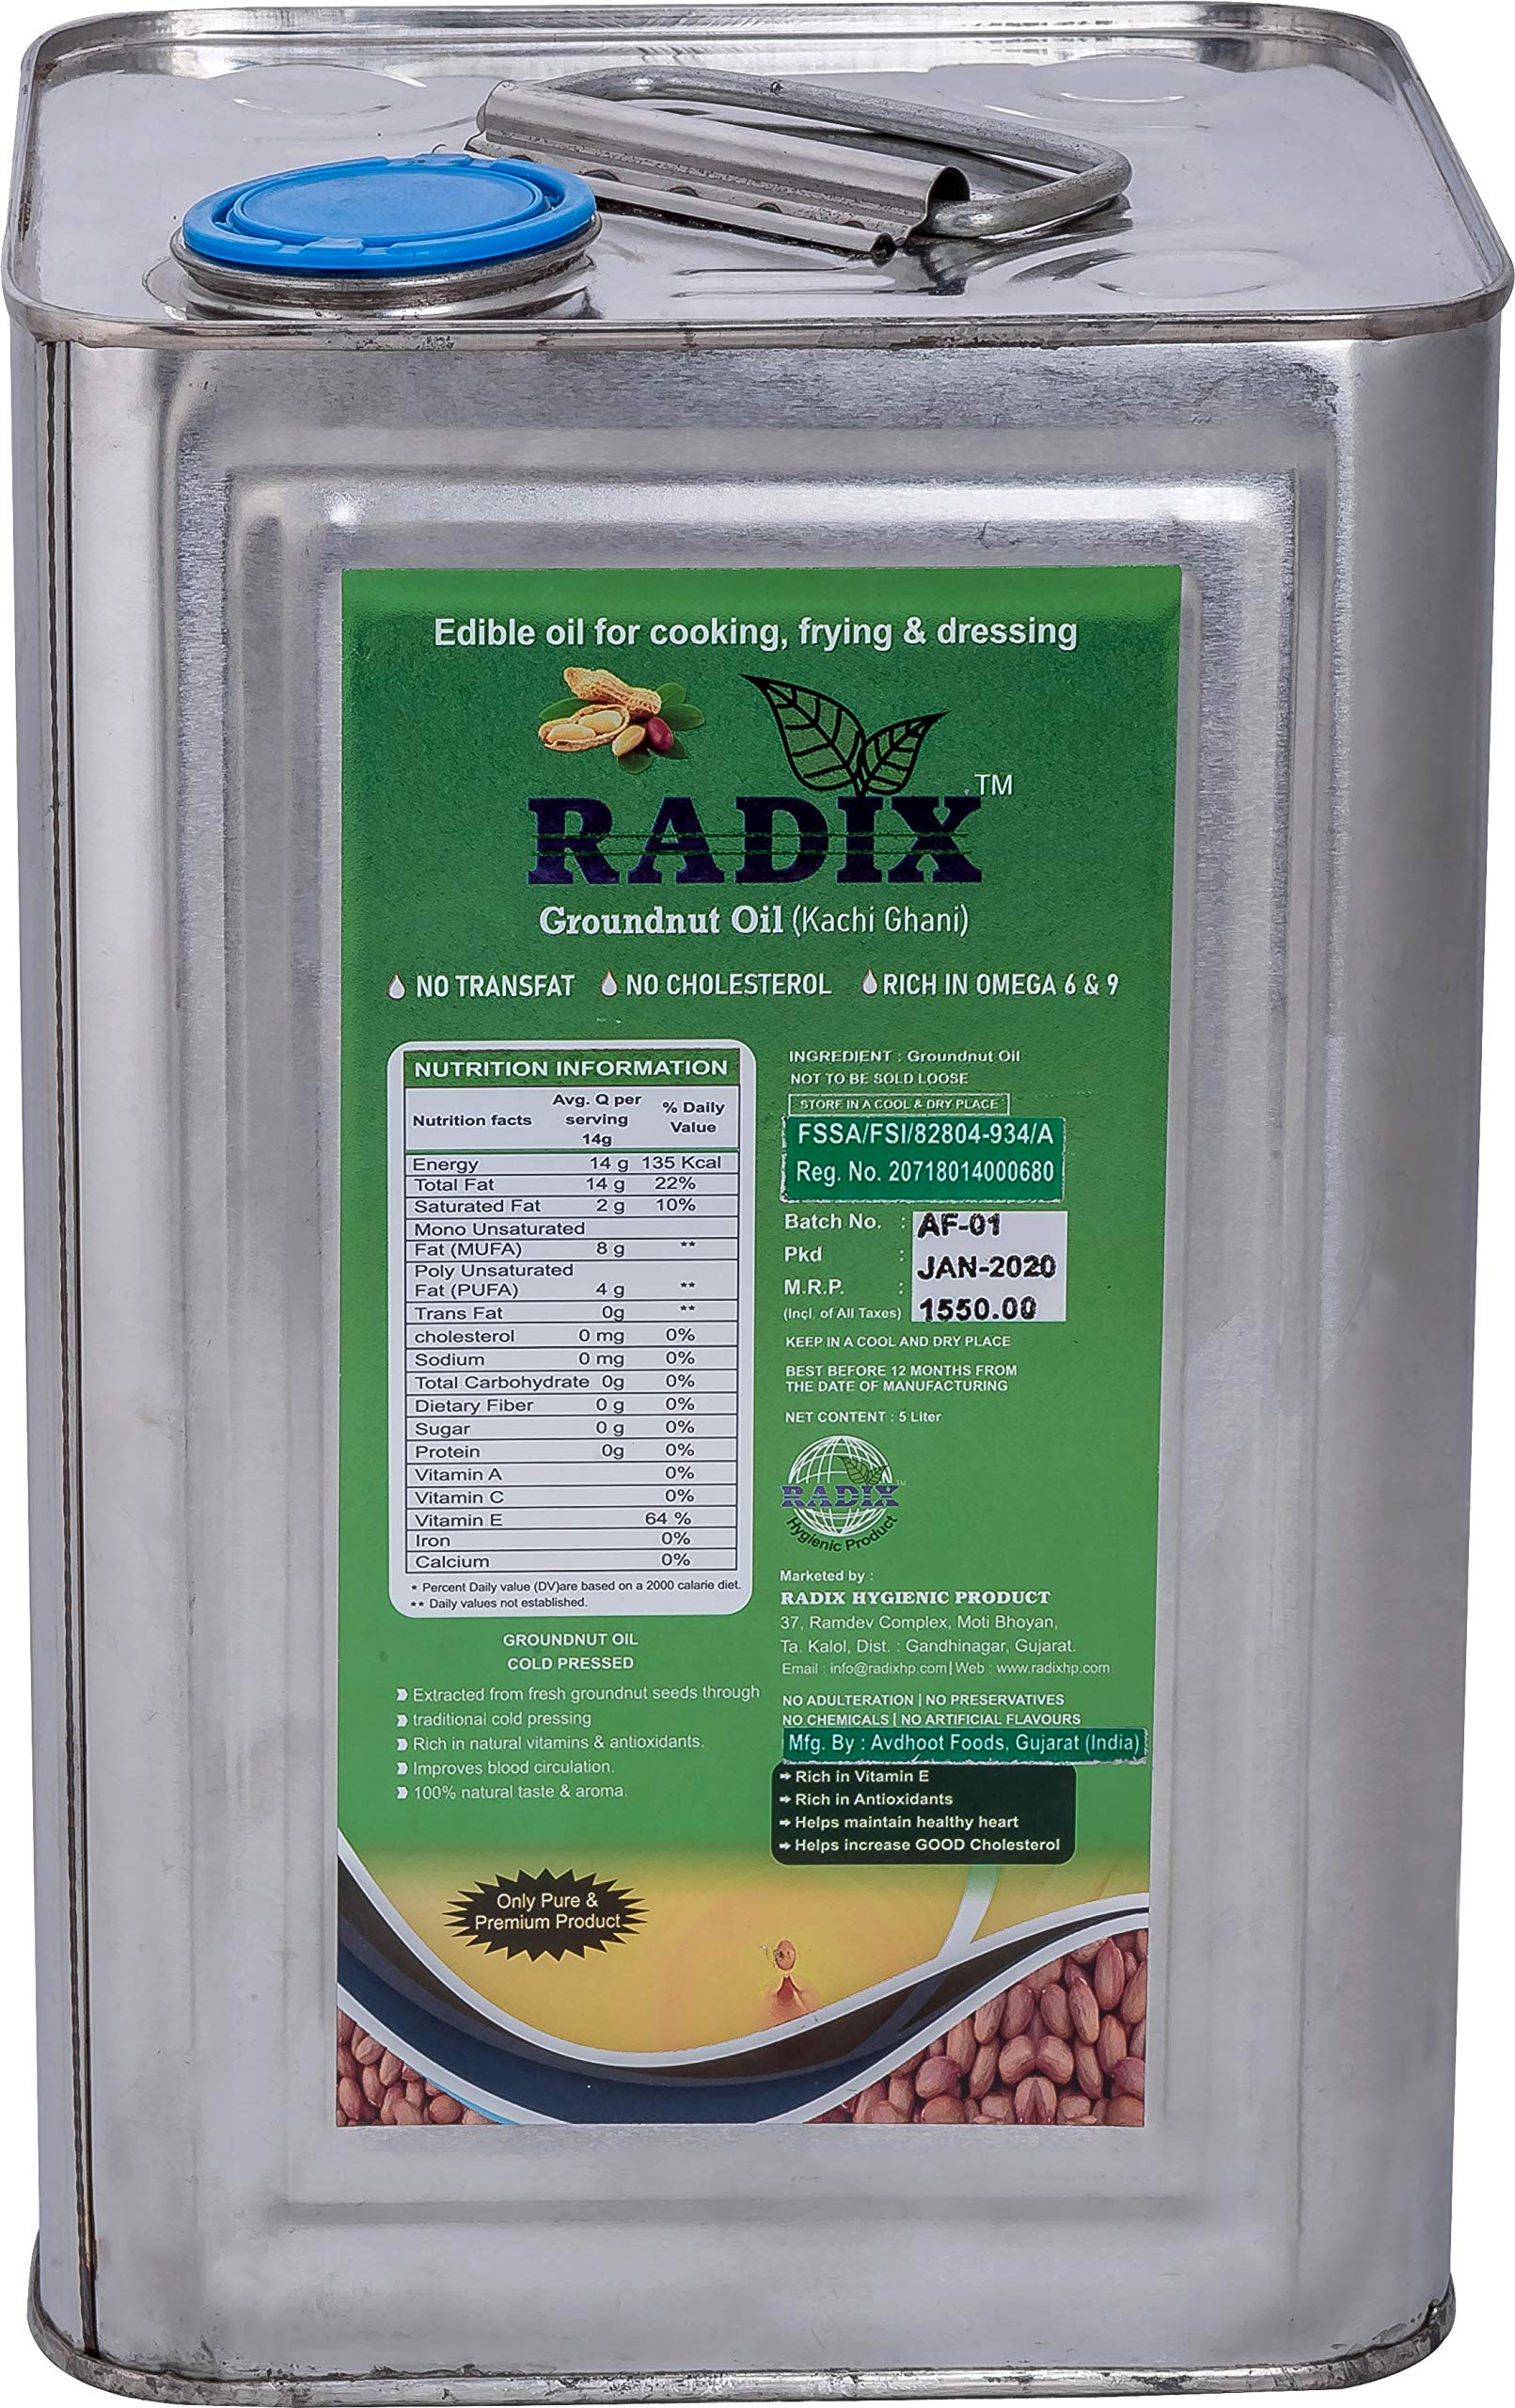 Radix Cold Pressed Groundnut Oil/ Peanut Oil/ Extra Virgin, Natural, Unrefined Groundnut Oil/ Kohlu (Chekku) Oil for Cooking/ No Cholesterol, No Transfat, Excellent for Heart Health (5 Liter)